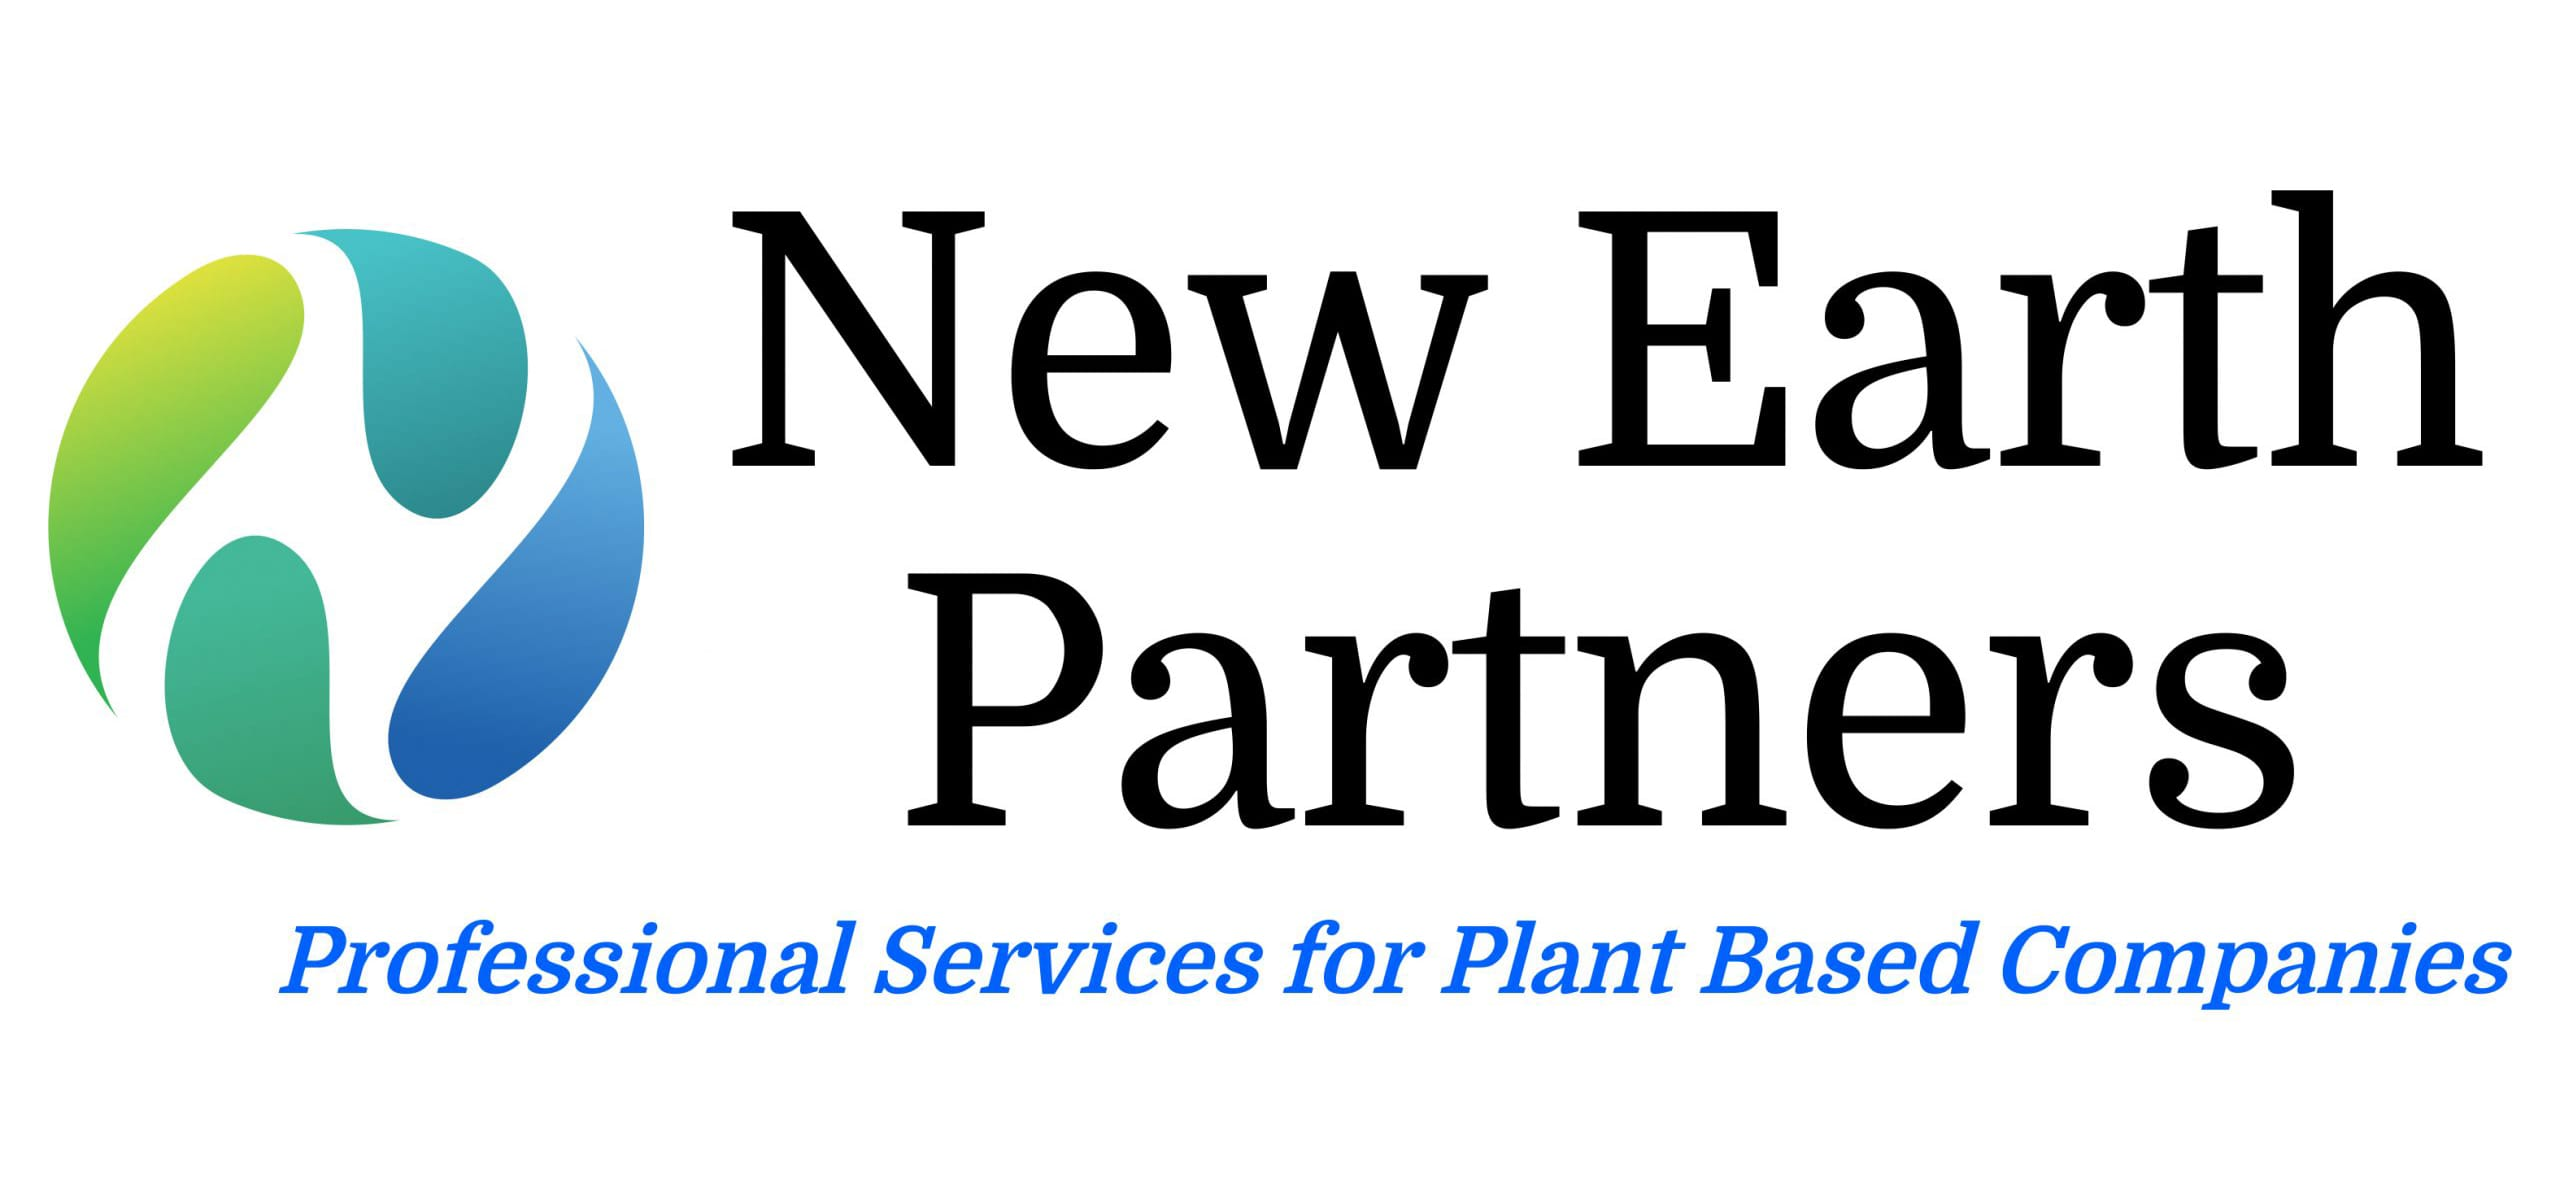 New Earth Partners Launches To Support Plant-Based Companies With Financial and Human Resources Expertise